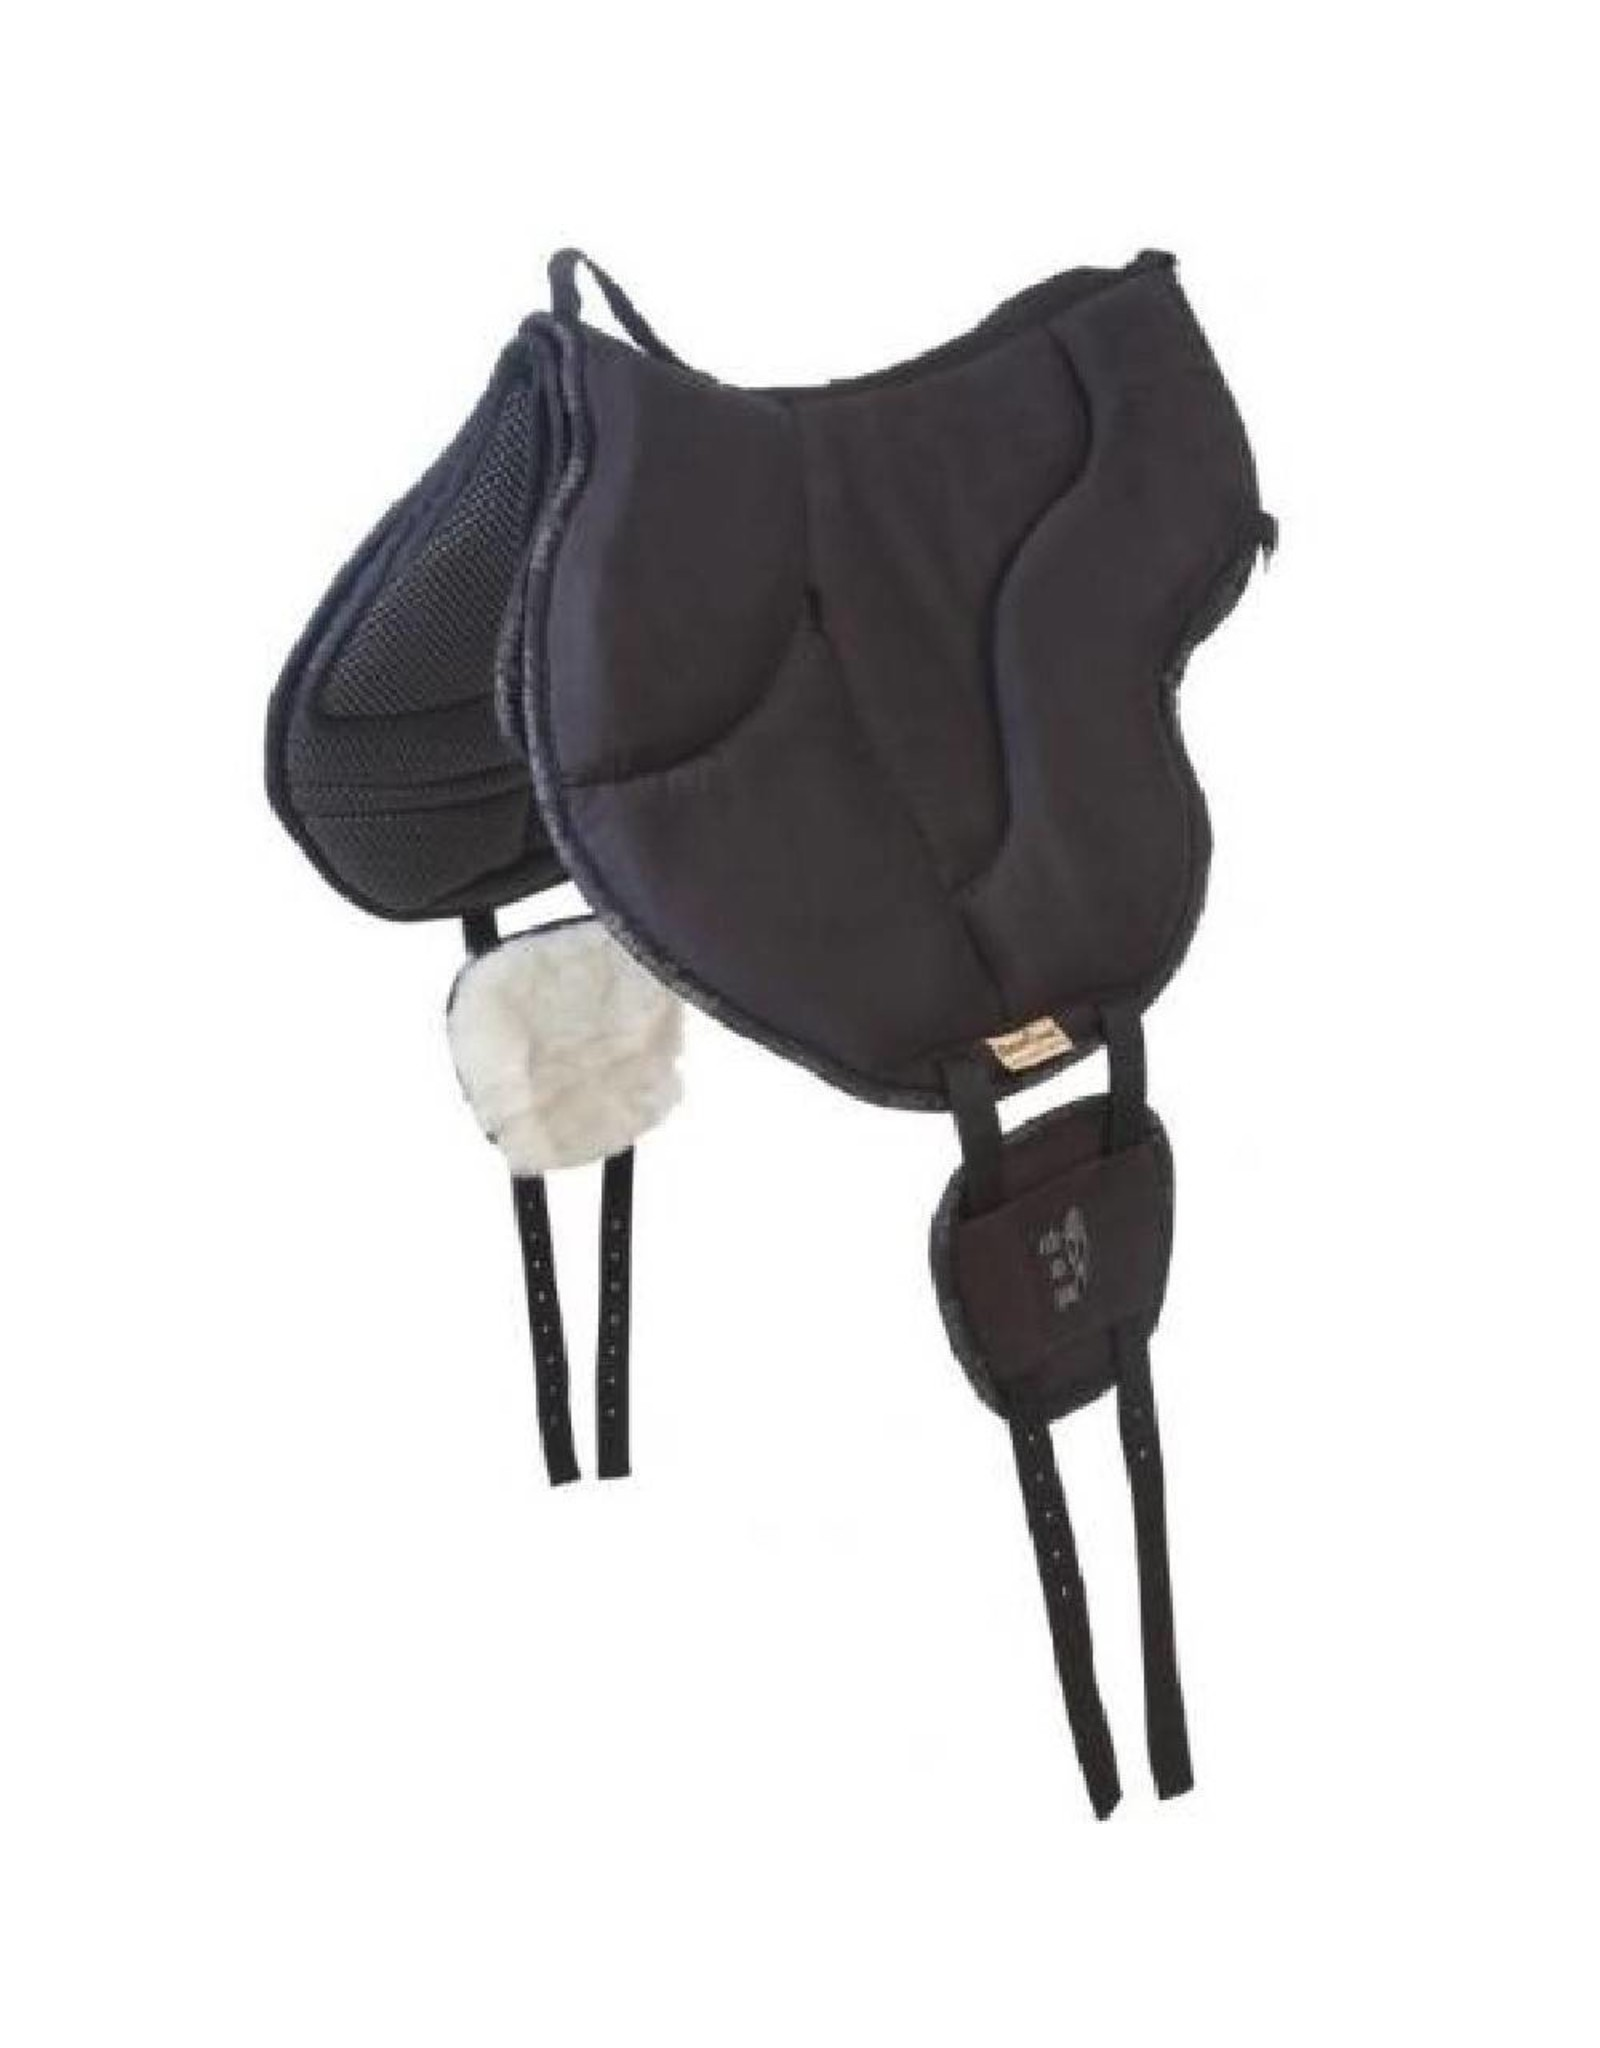 Barefoot Ride on Pad Physio barebackpad